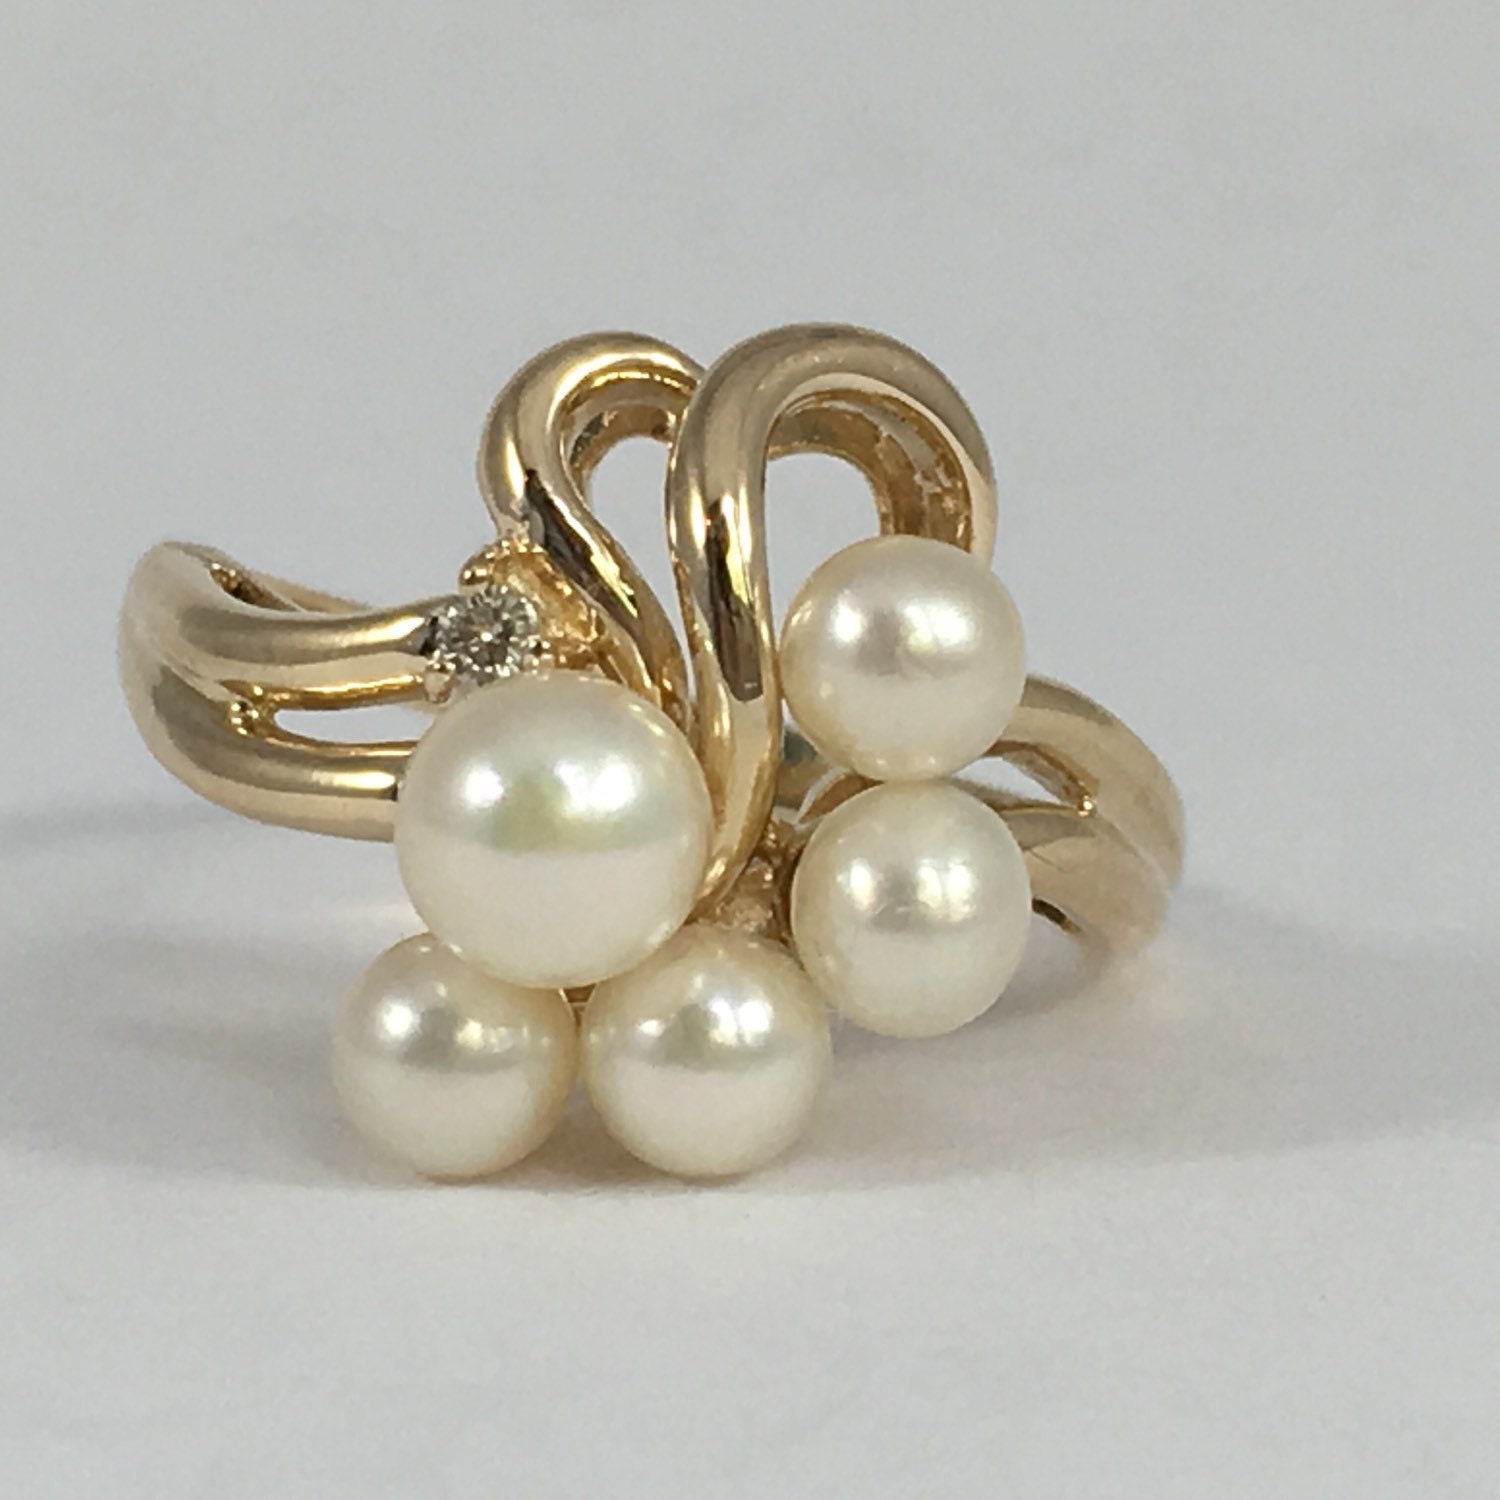 Vintage Pearl and Diamond Ring 4 Pearls in Grape Bushel Design 14k